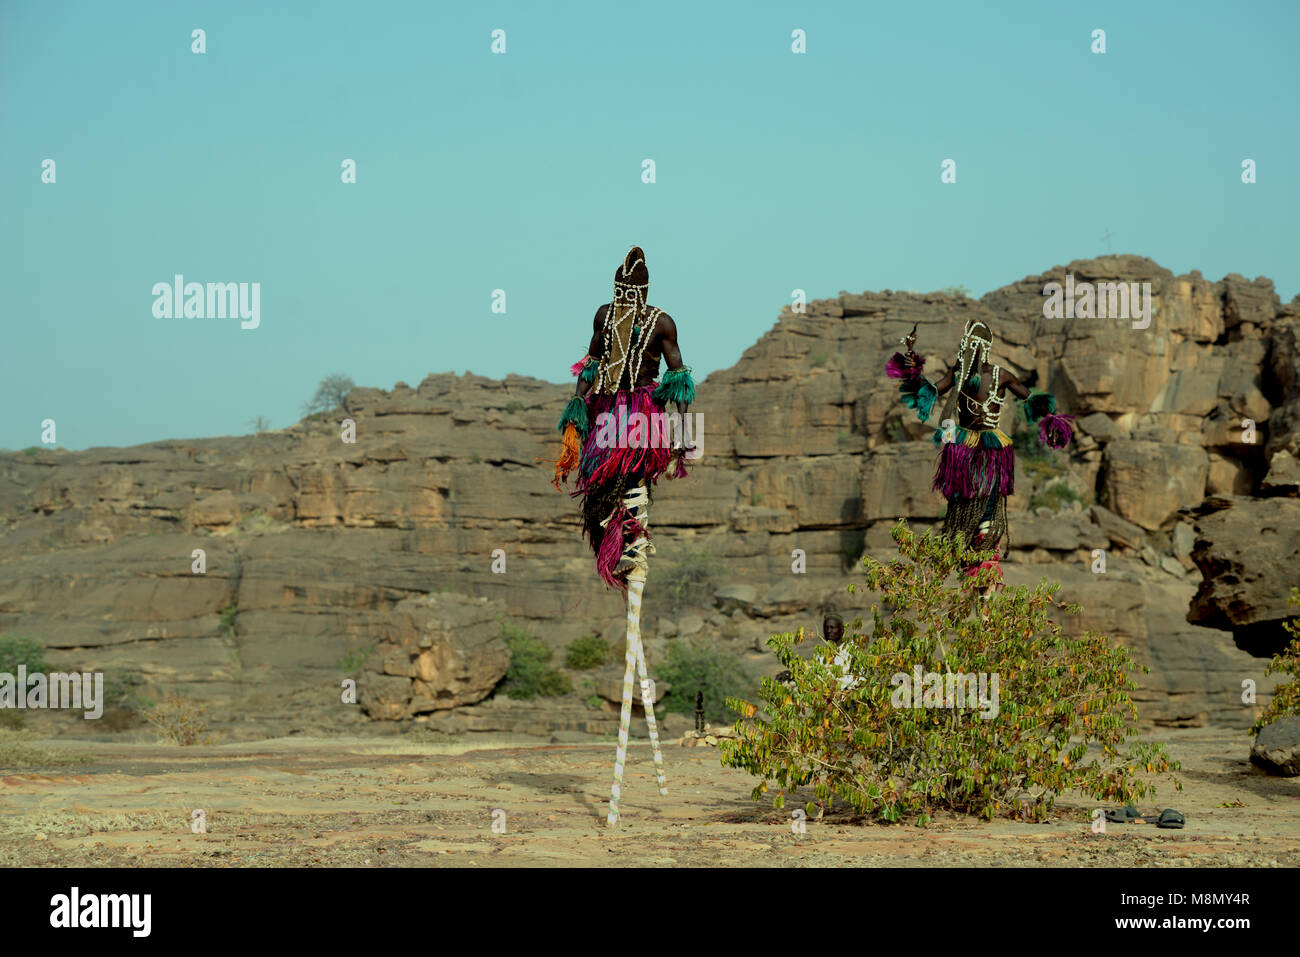 Walking on stilts is part of Dogon masked dancing. Dogon country, Mali, West Africa. - Stock Image